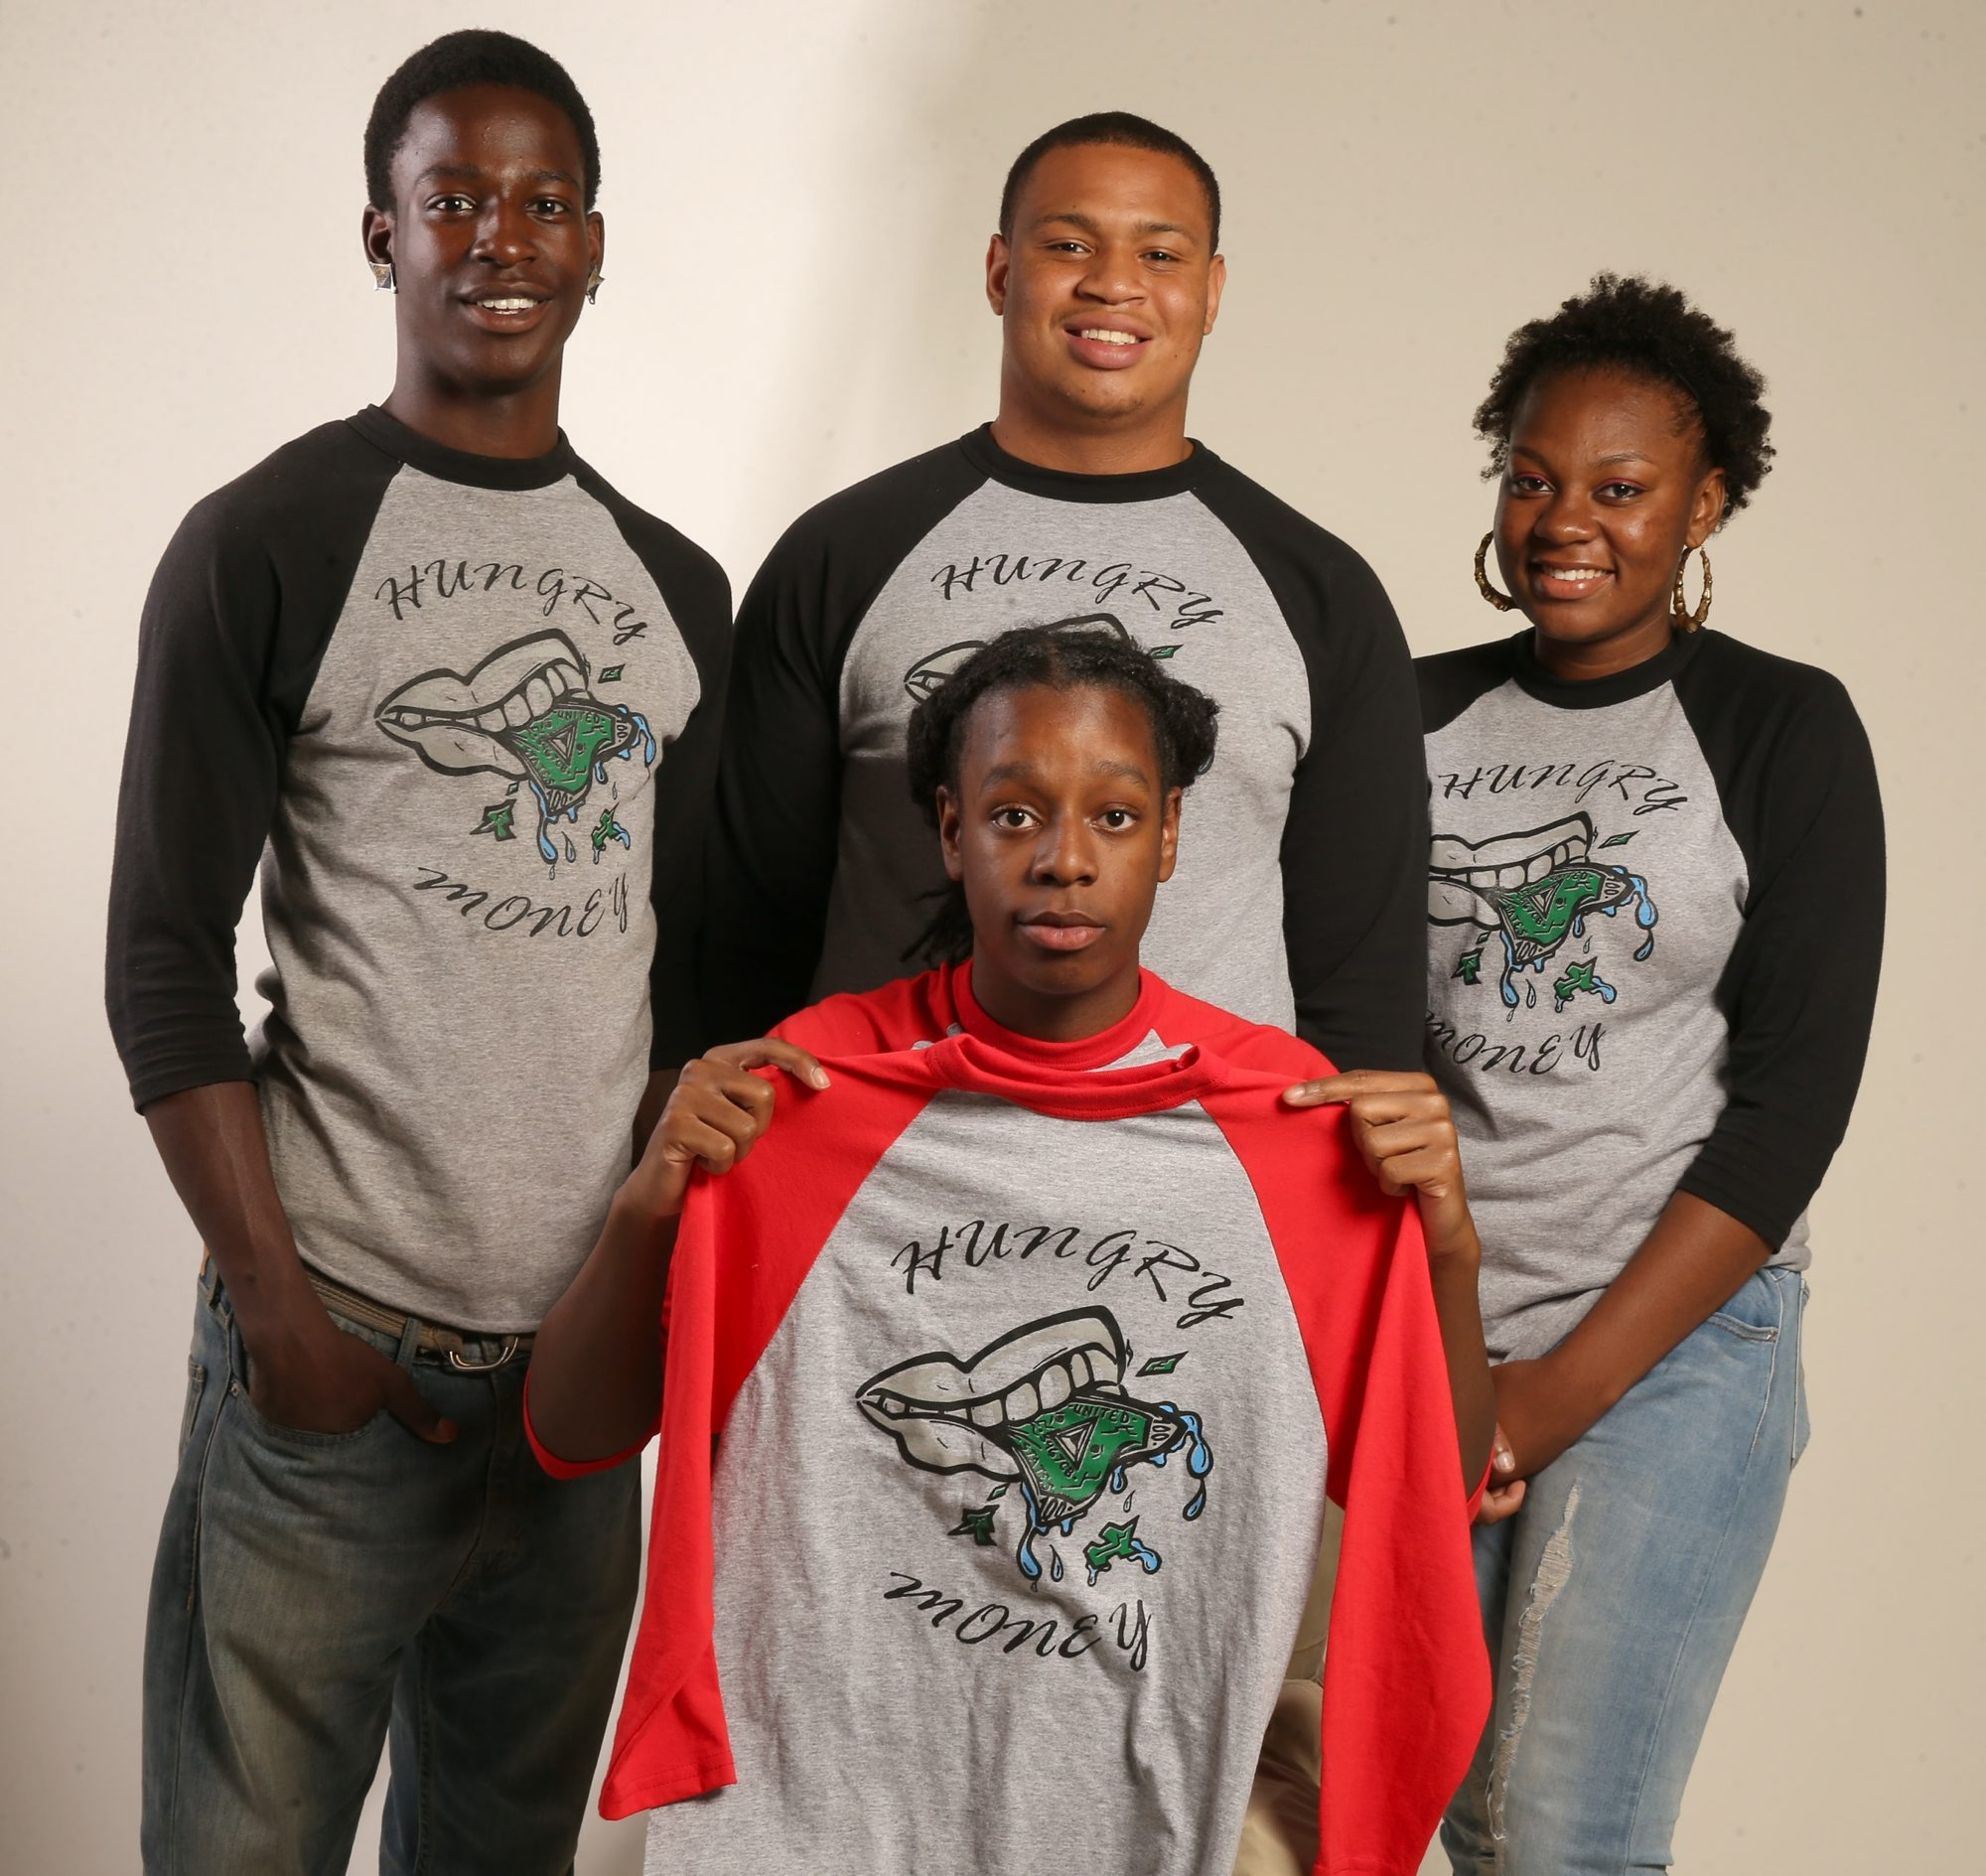 From left, standing, Darius White, Damon Jackson and Hanifah Habeeb, and Damon White, seated, display a T-shirt.